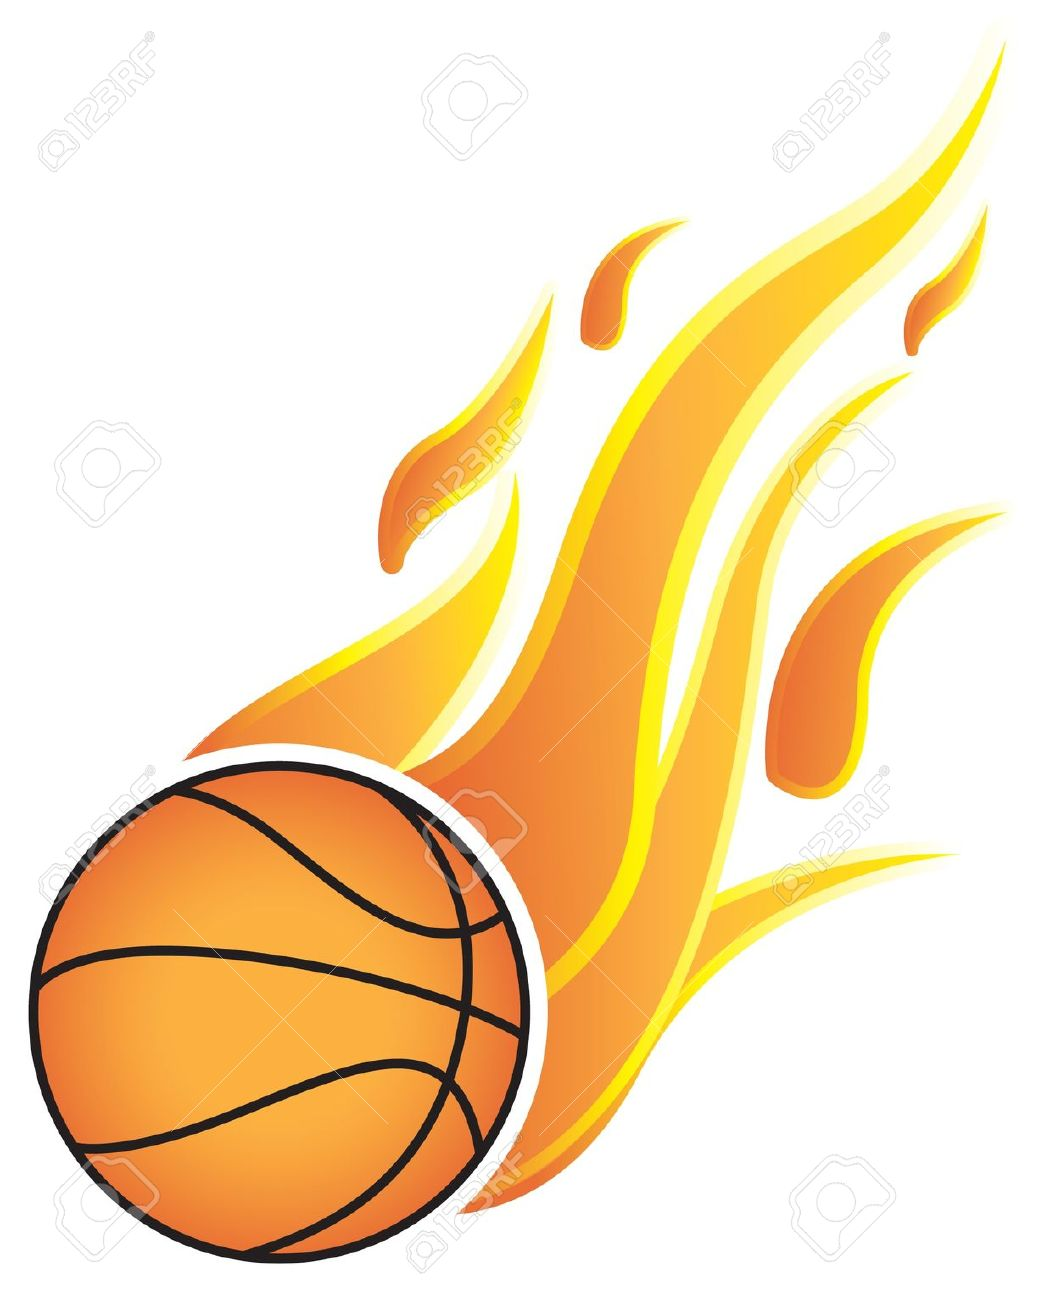 932 Basketball Ball In Fire Stock Vector Illustration And Royalty.